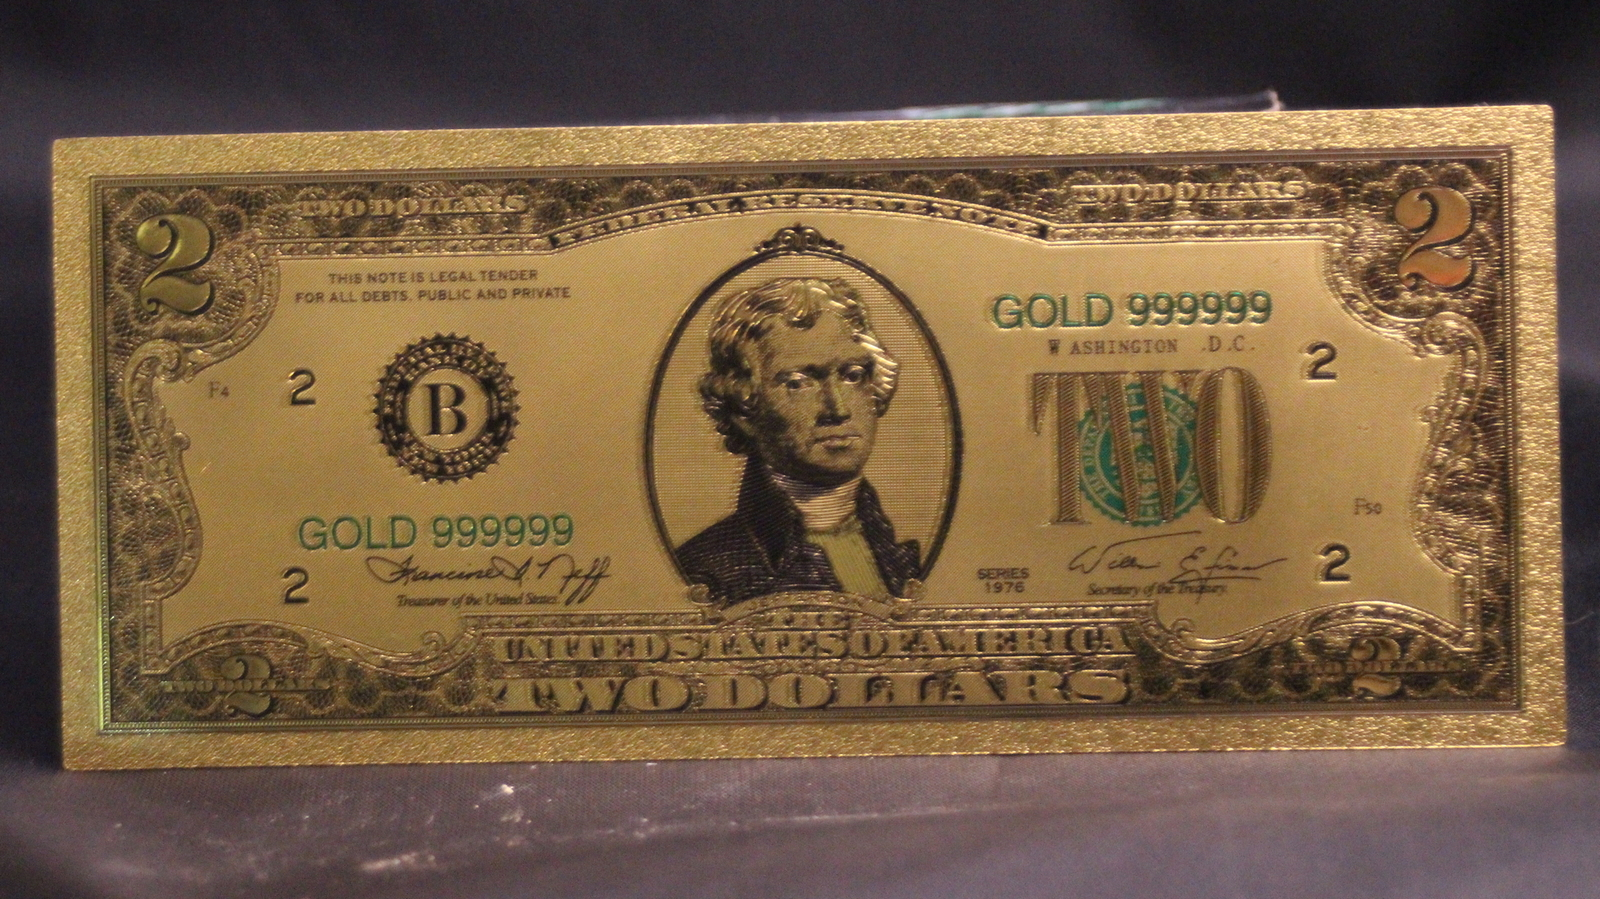 24k gold  2 dollar colorized banknote front view